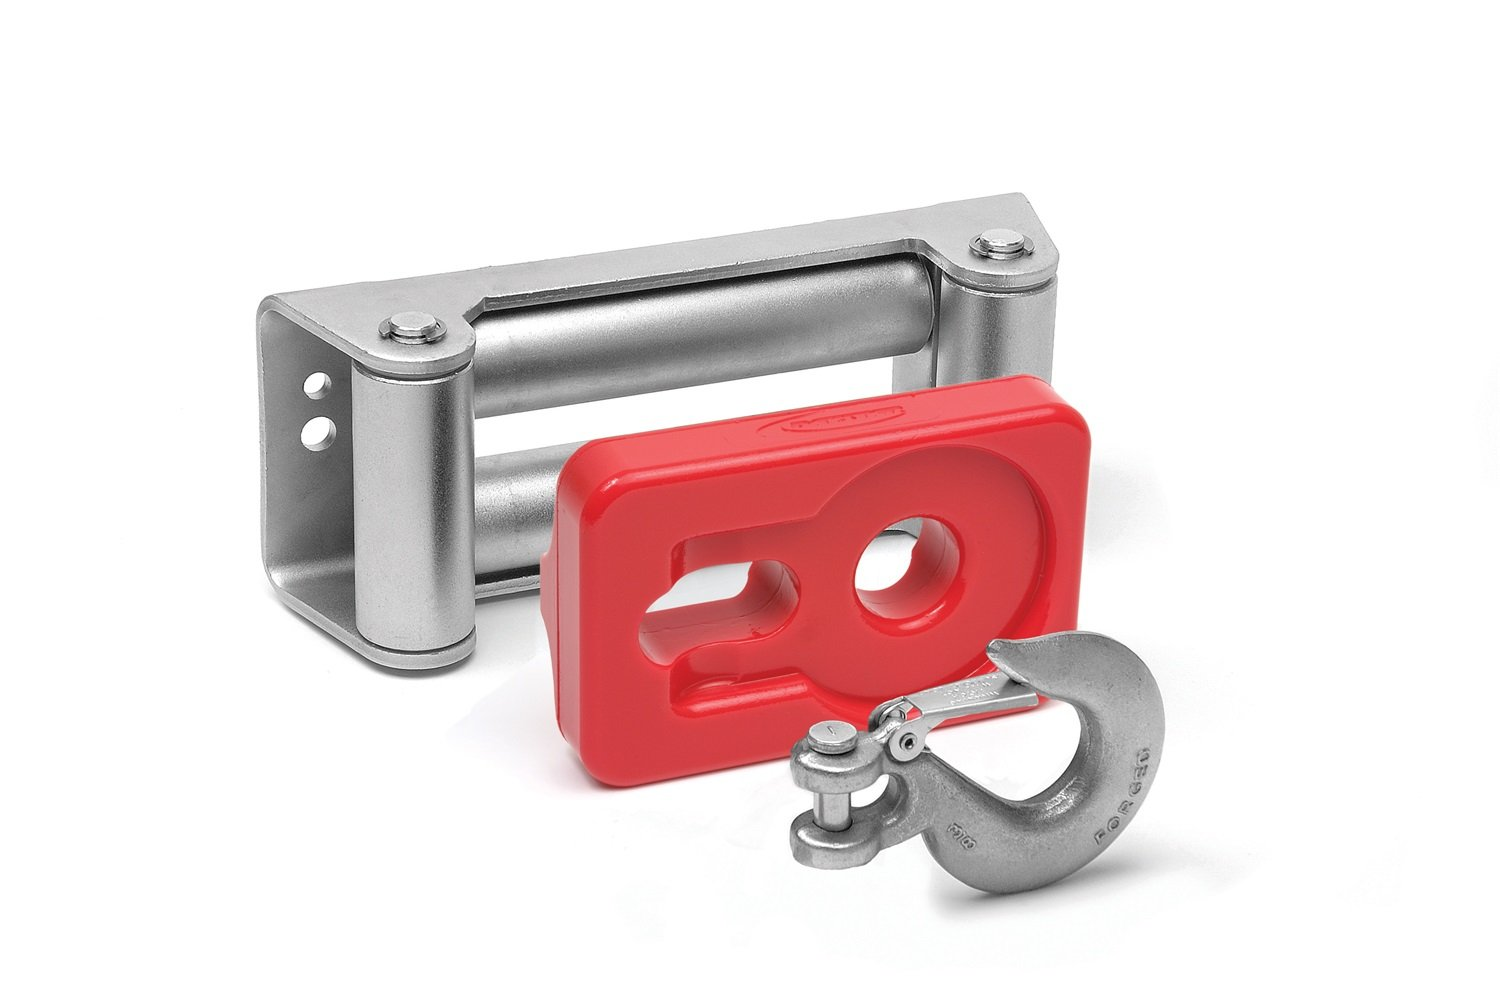 Daystar, Universal winch hook roller fairlead isolator, red, fits most 8k lb to 12.5k lb winches, KU70039RE, Made in America